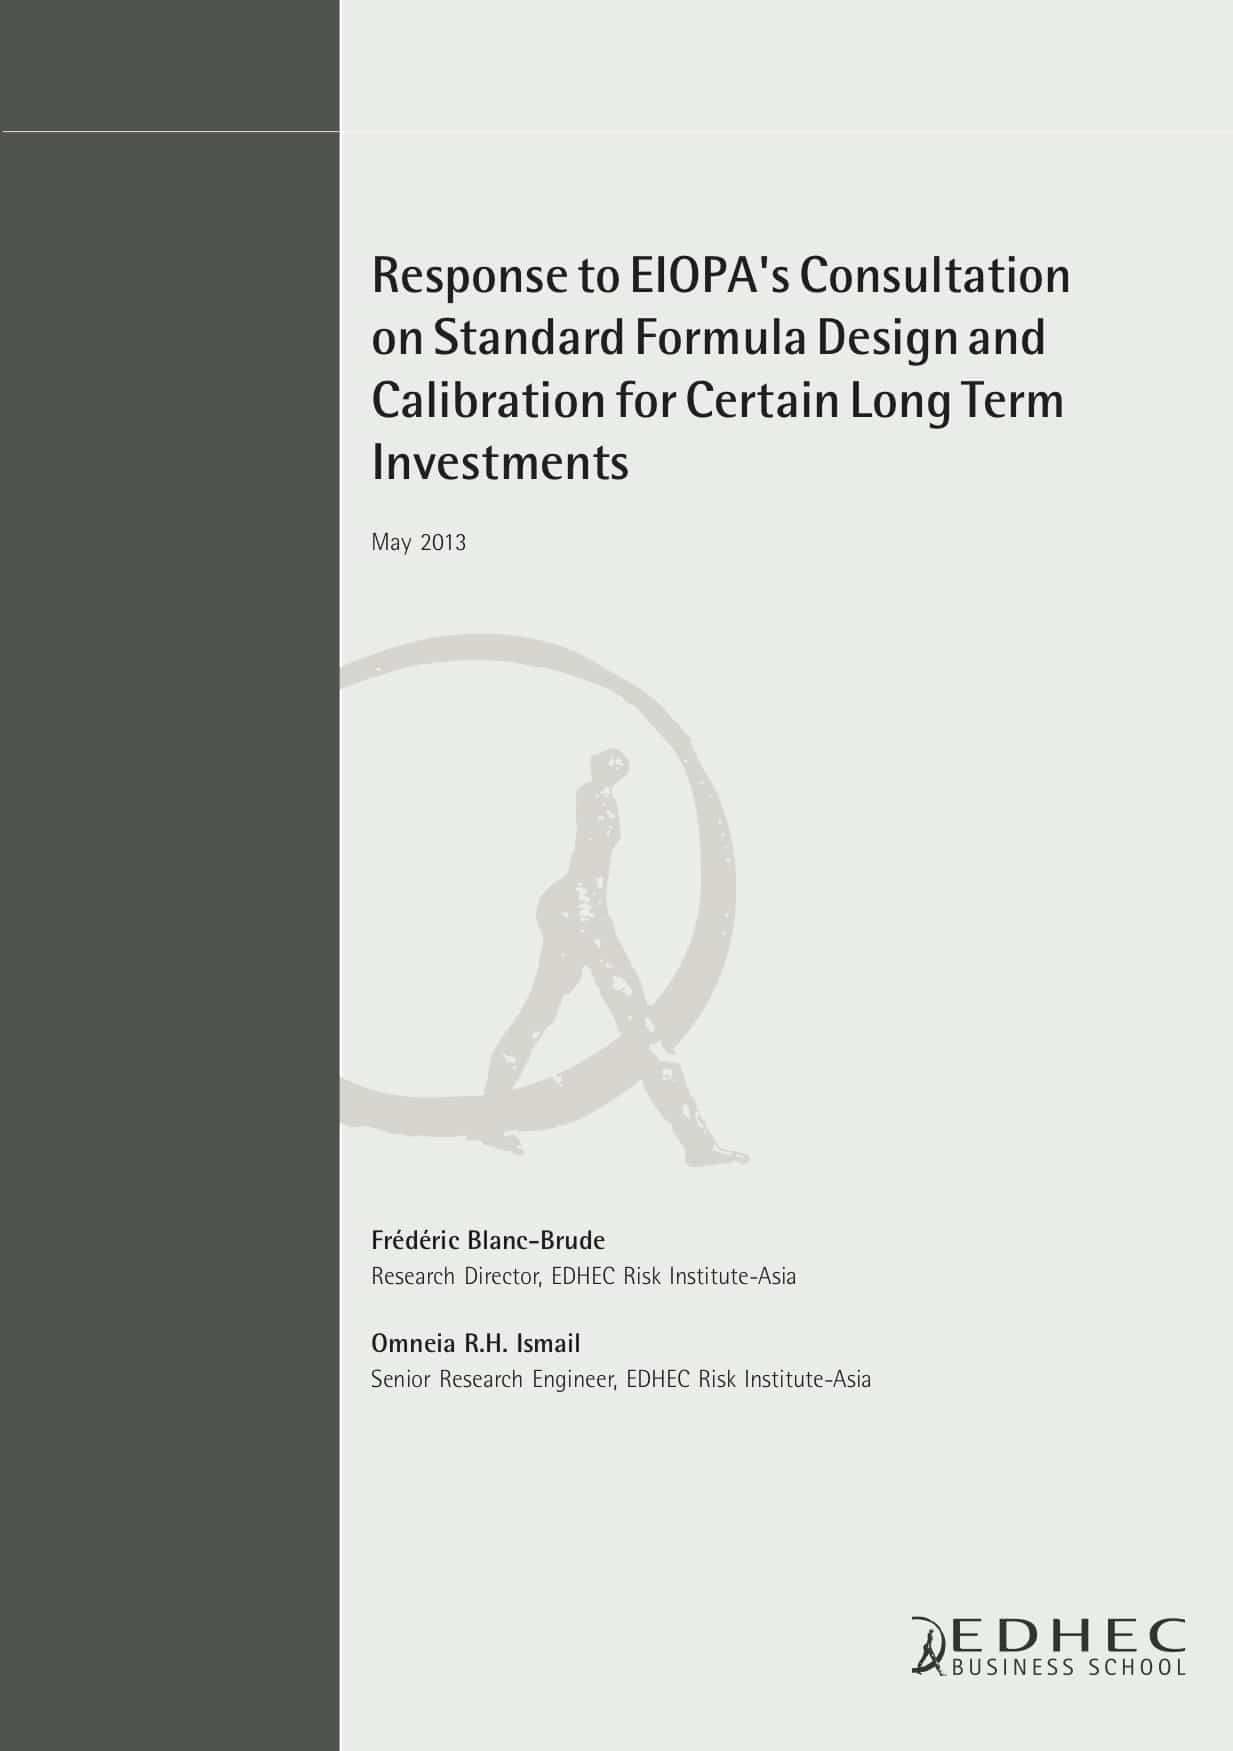 Response to EIOPA's Consultation on Standard Formula Design and Calibration for Certain Long Term Investments